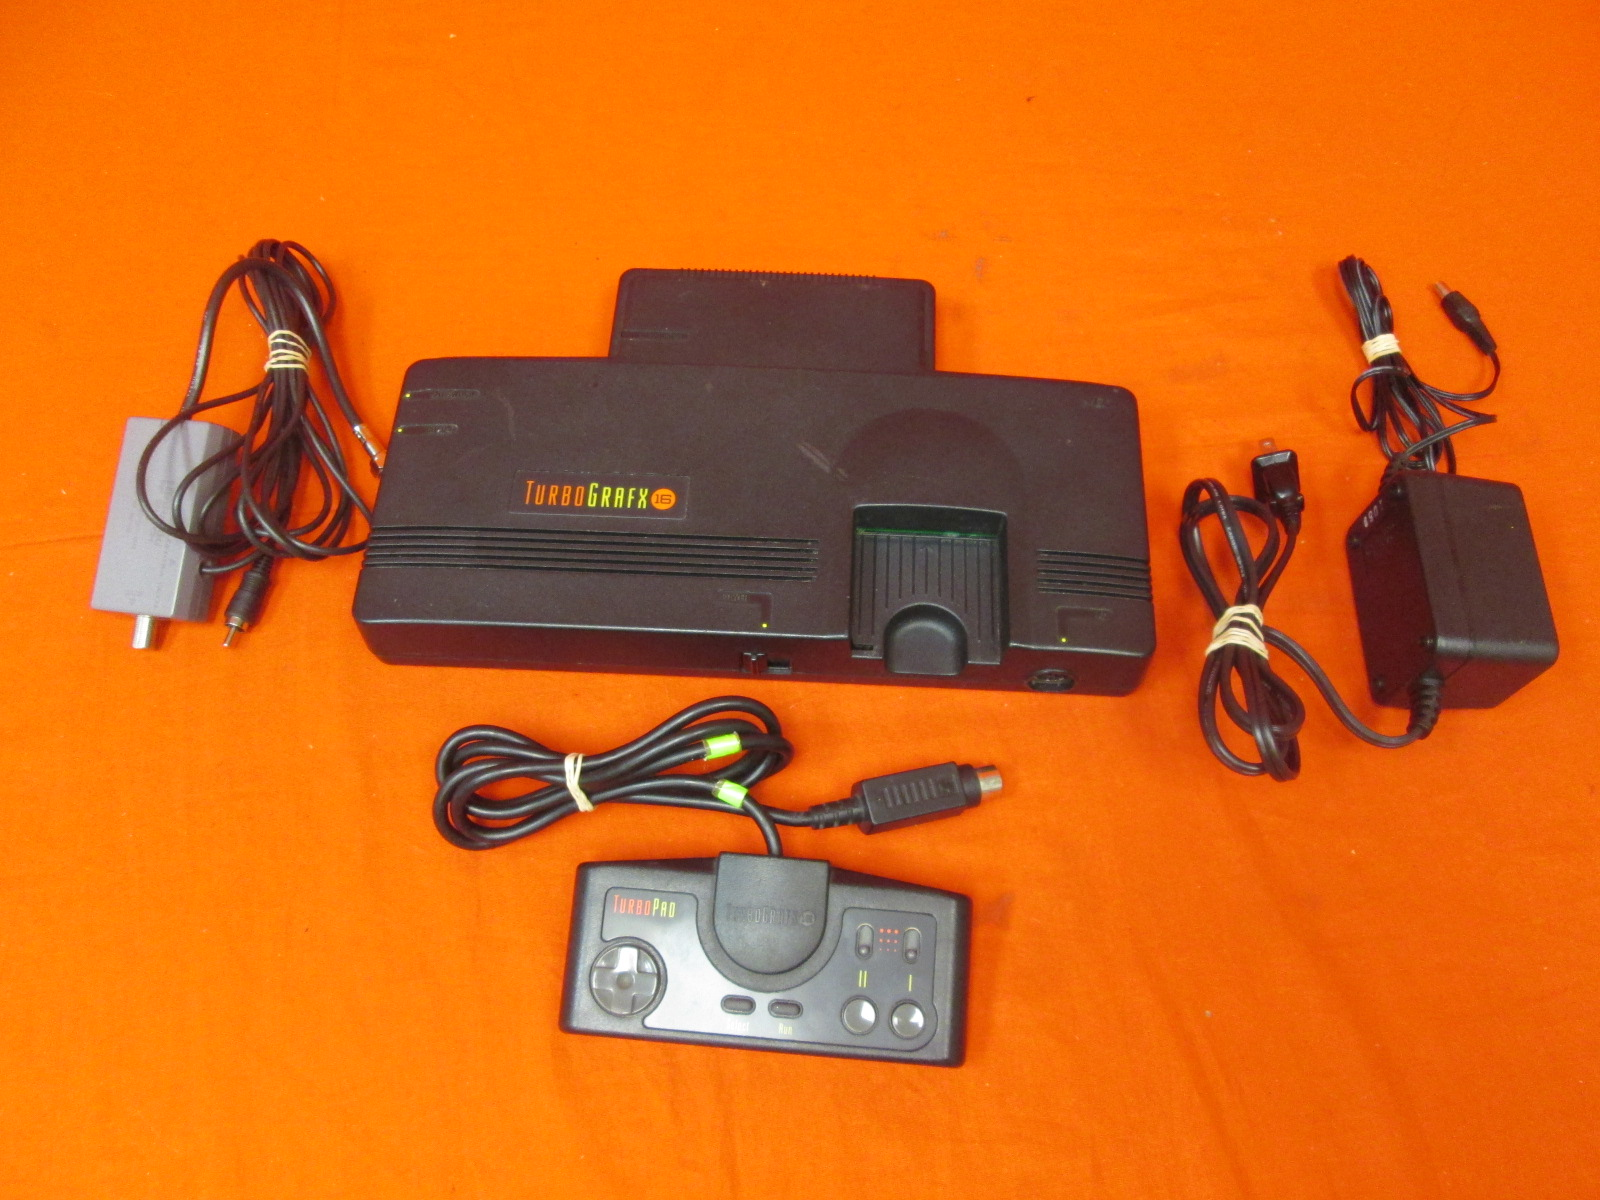 Turbo Grafx 16 System Video Game Console